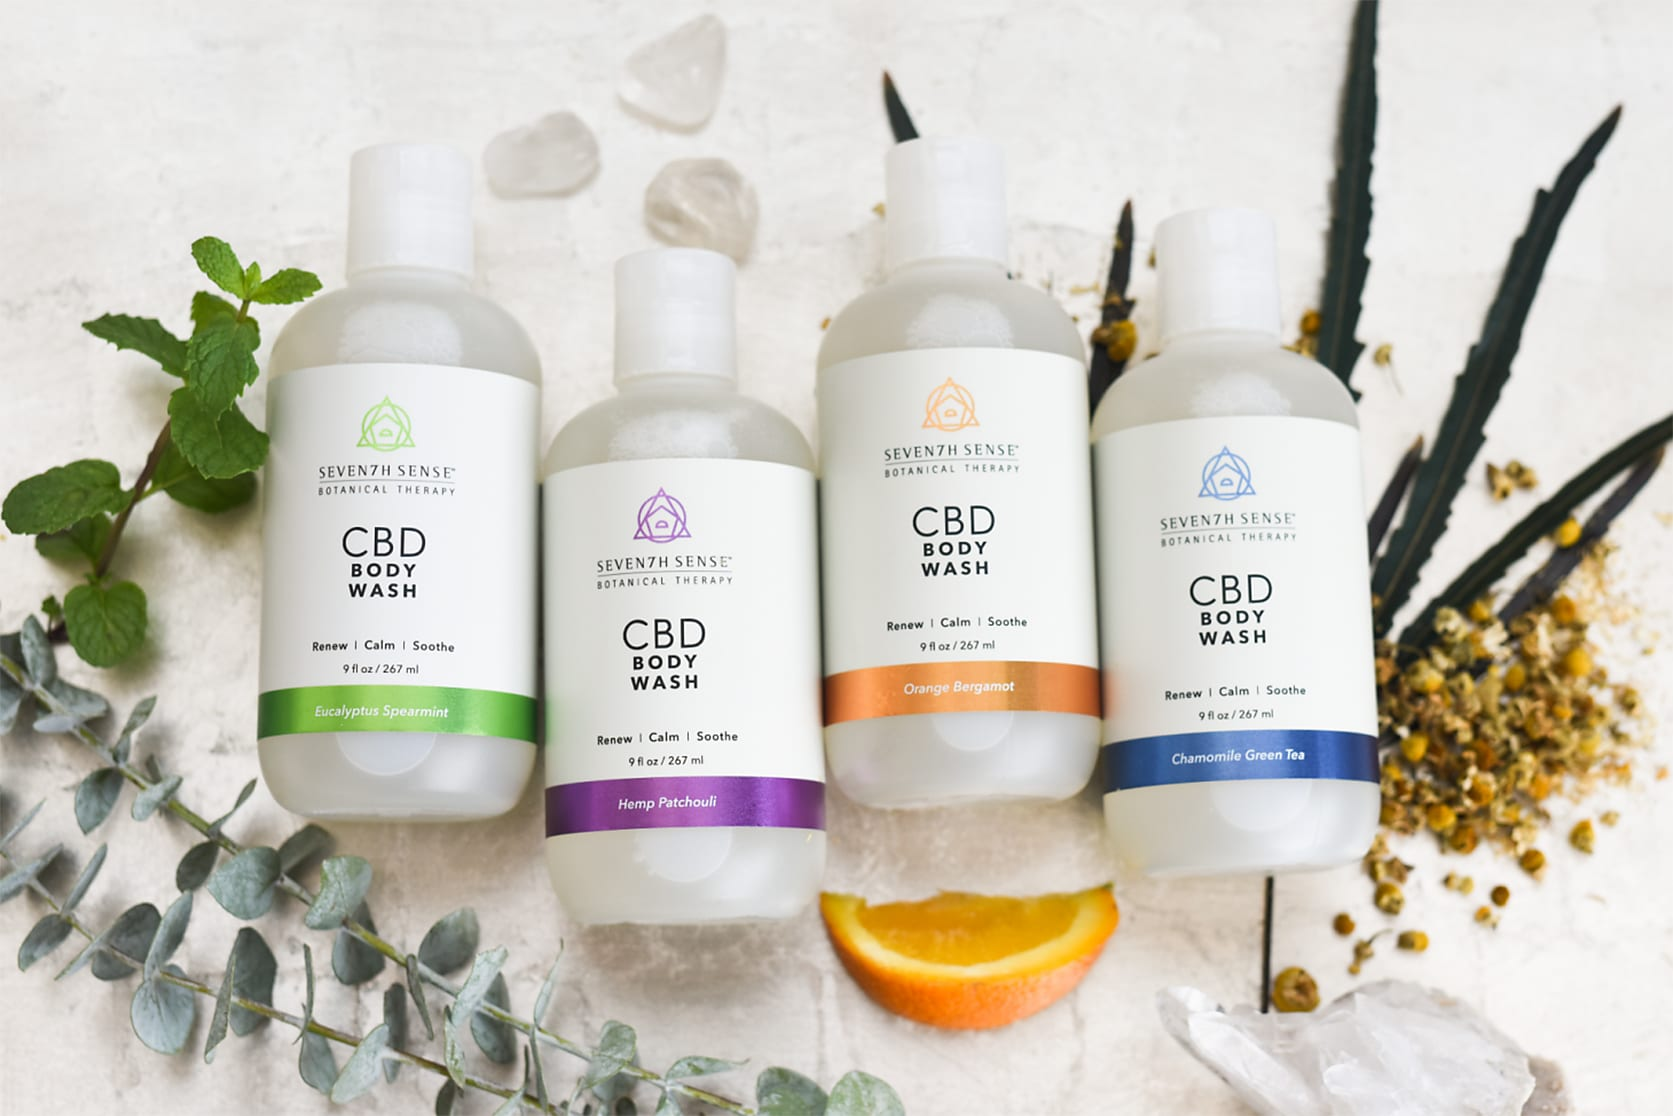 Green Growth Brands to Open 100th U.S. CBD Store